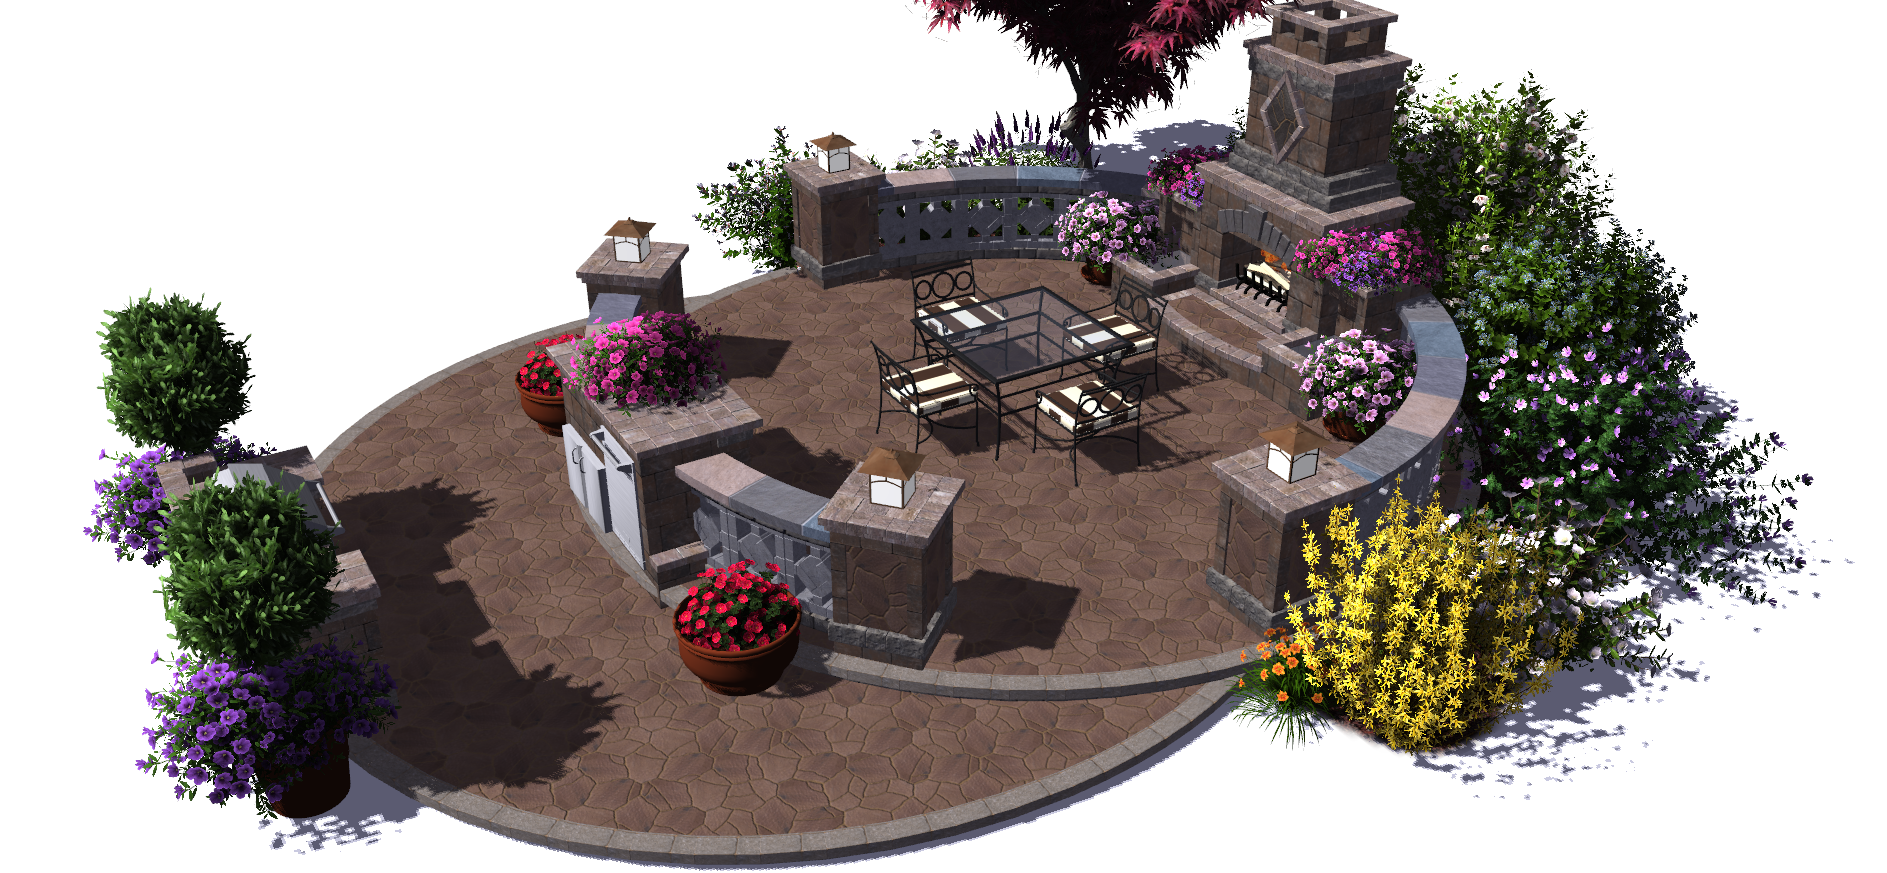 Visionscape interactive llc transforms landscape design for 3d garden designs